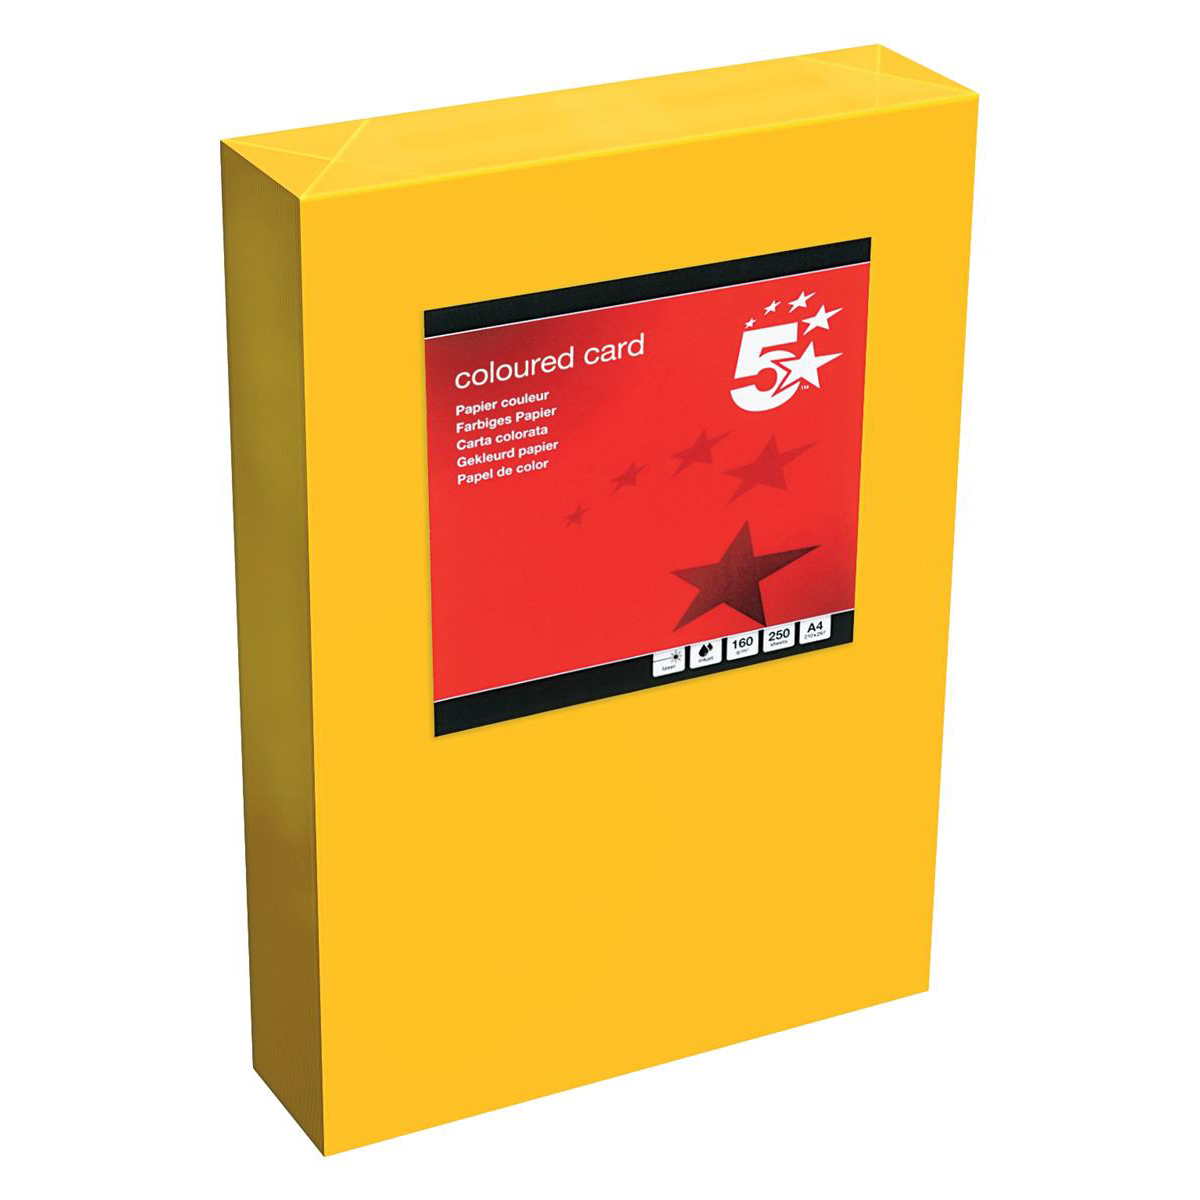 5 Star Office Coloured Card Tinted 160gsm A4 Deep Orange Pack 250